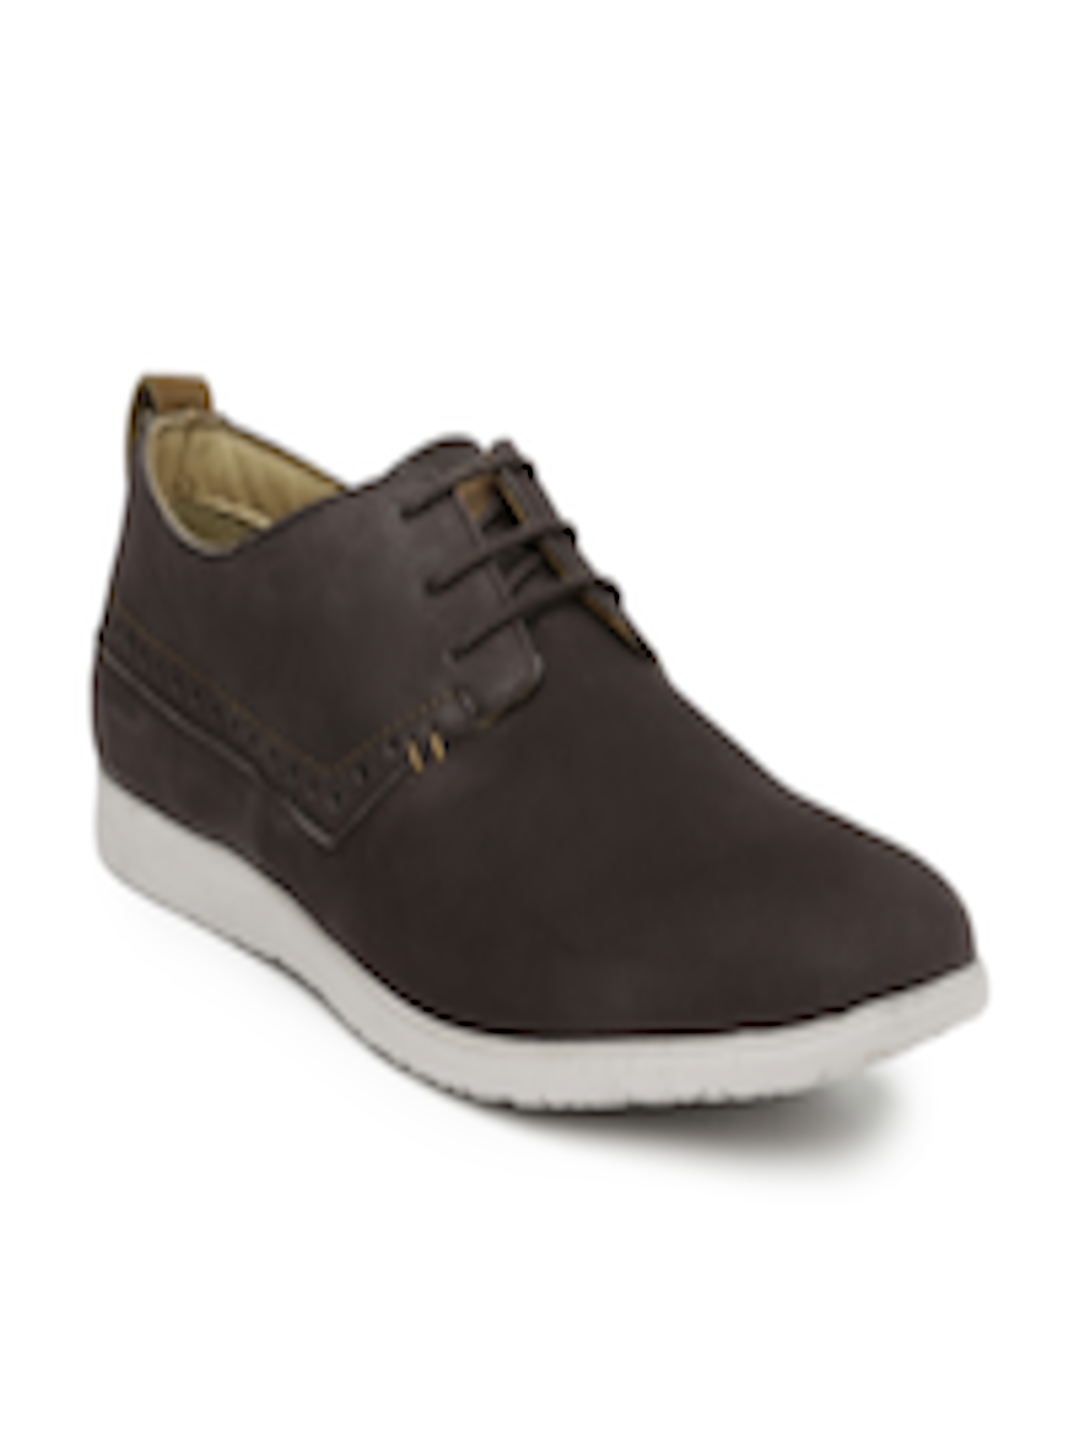 buy hush puppies brown leather casual shoes casual